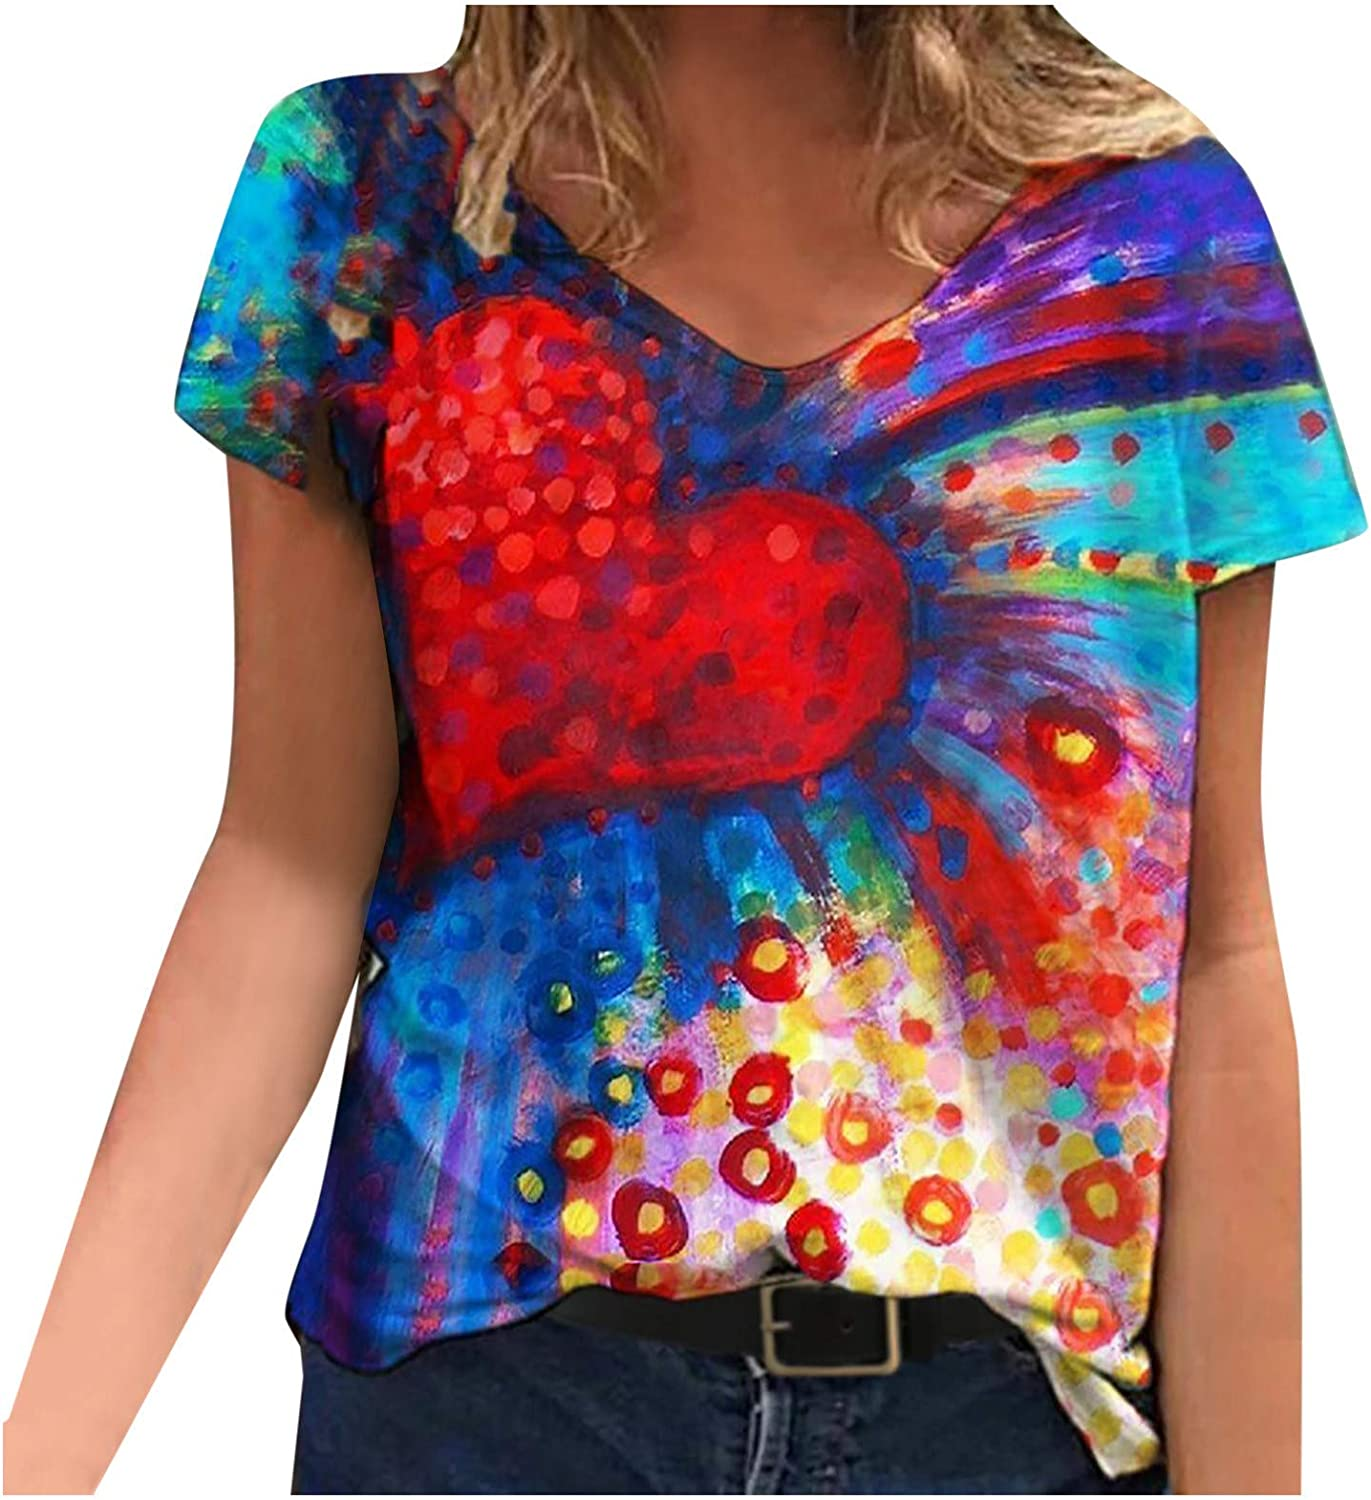 Womens Summer Tie-Dyed Printed Wrap V-Neck Short Sleeve Tops Fashion Casual Loose Tee T-Shirt Blouse